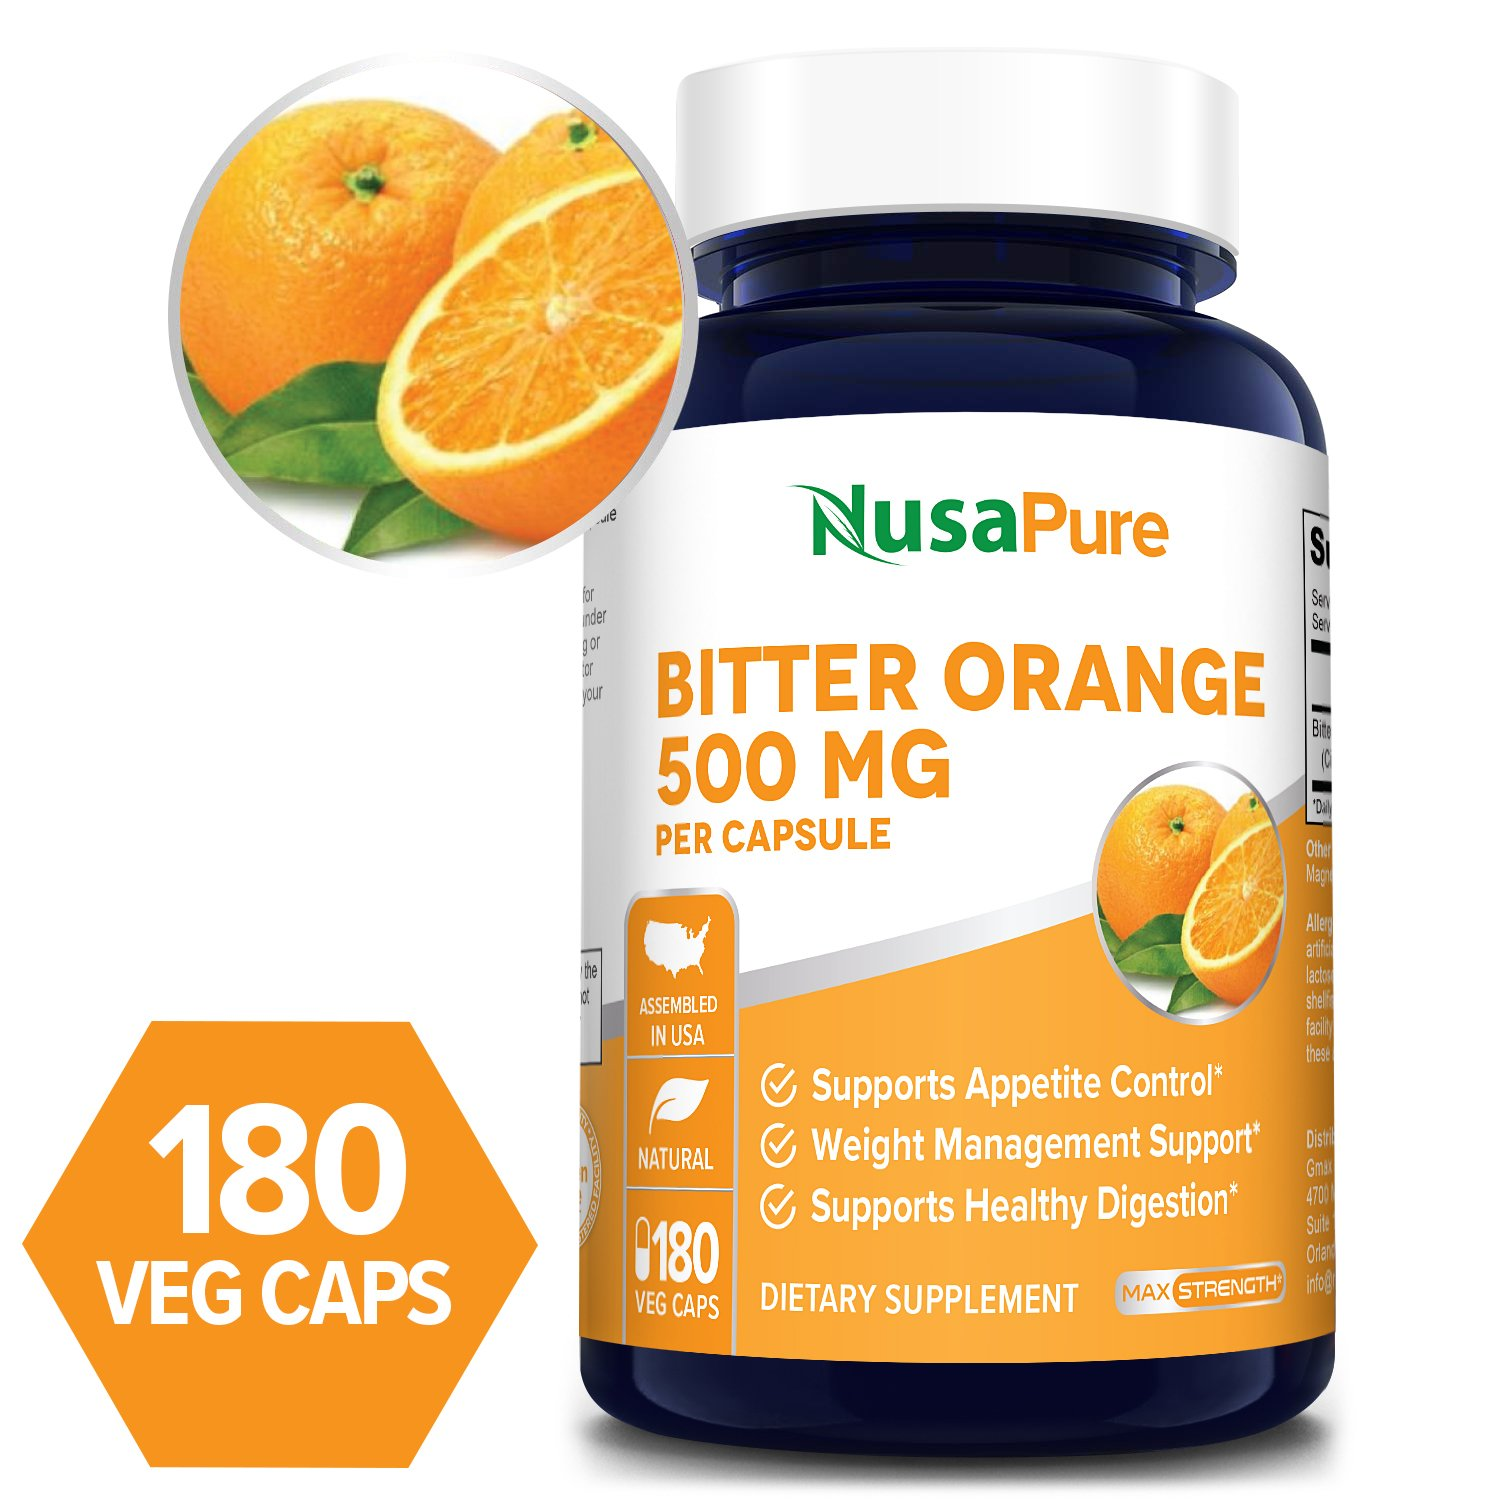 Bitter Orange 500 mg - 180 Veg Caps (Vegetarian,Non-GMO & Gluten-free)